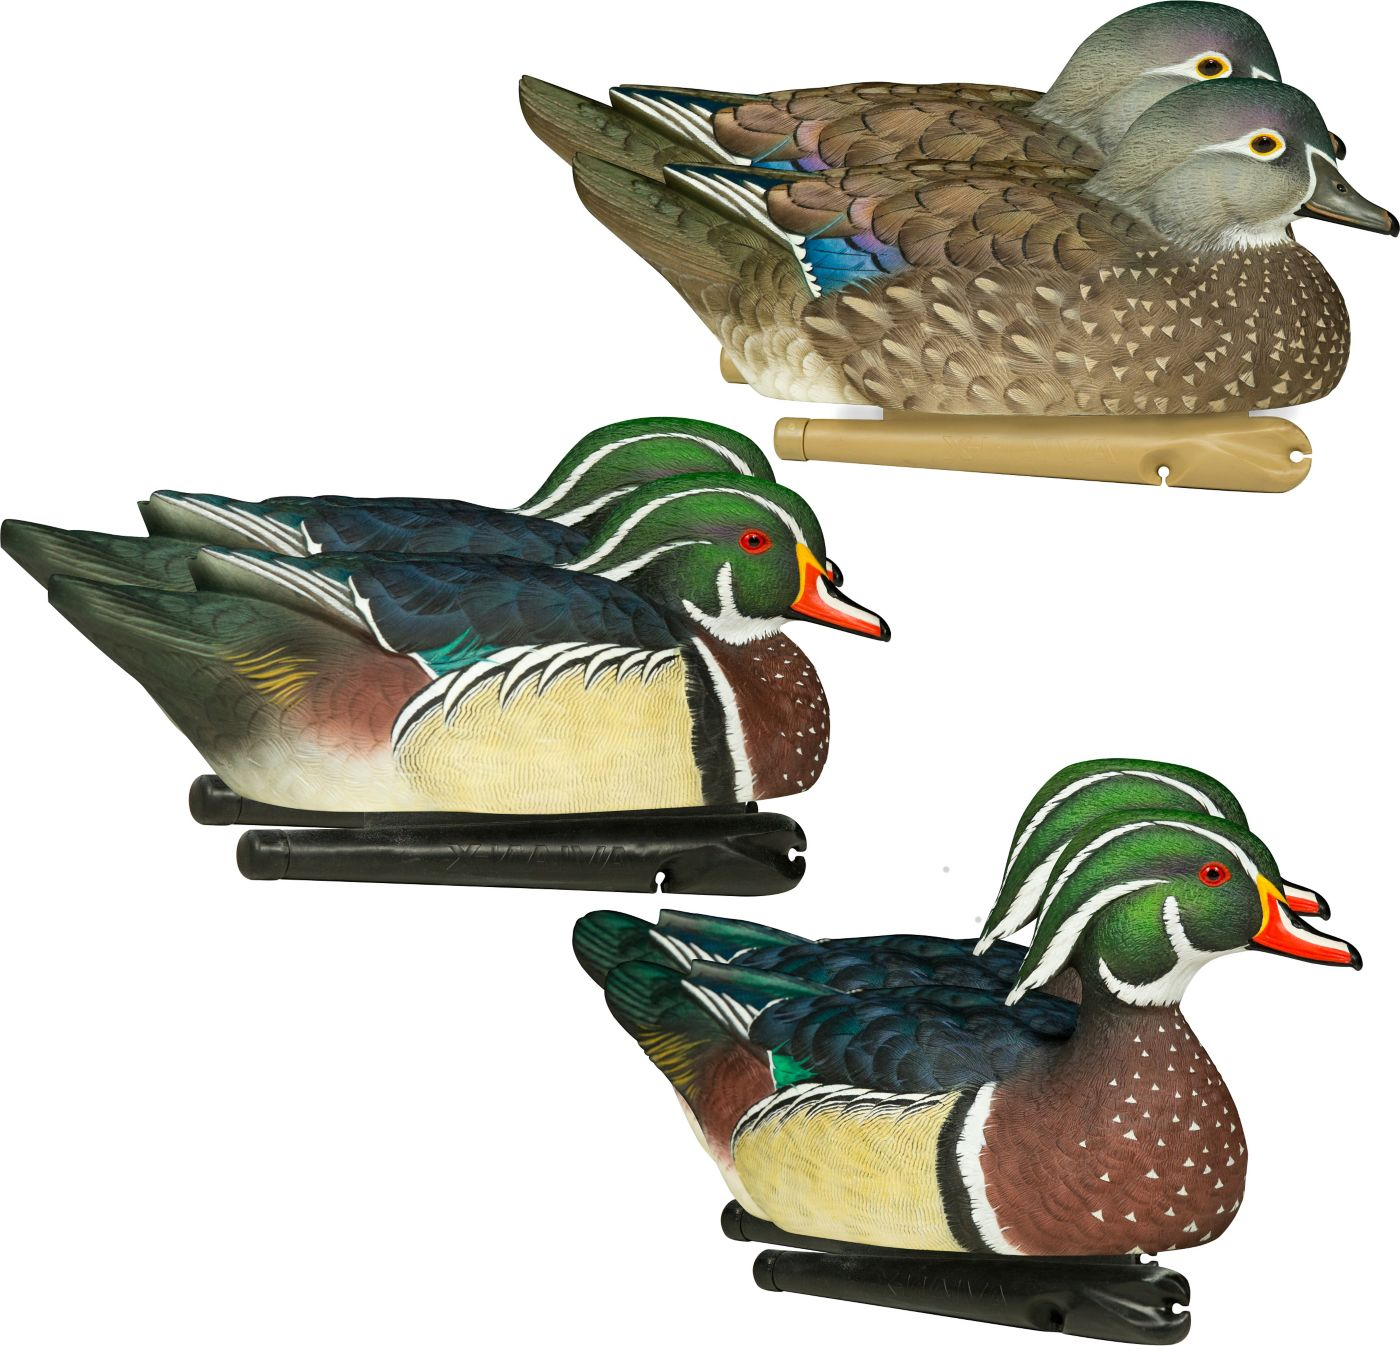 Avian-X Topflight Wood Duck Decoy - 6 pack